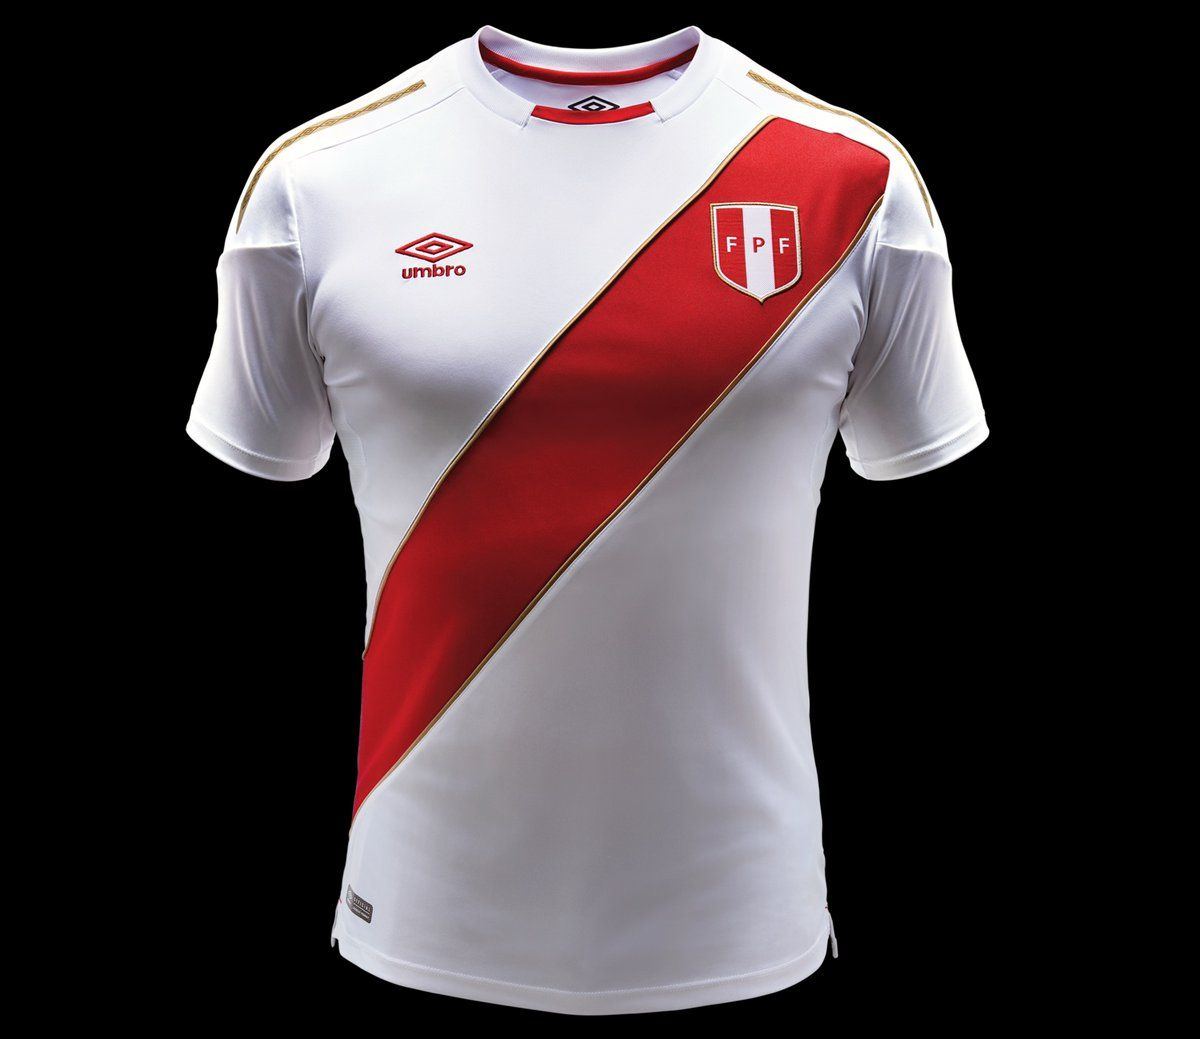 Peru 2018 World Cup Umbro Home Kit  3f39286e1